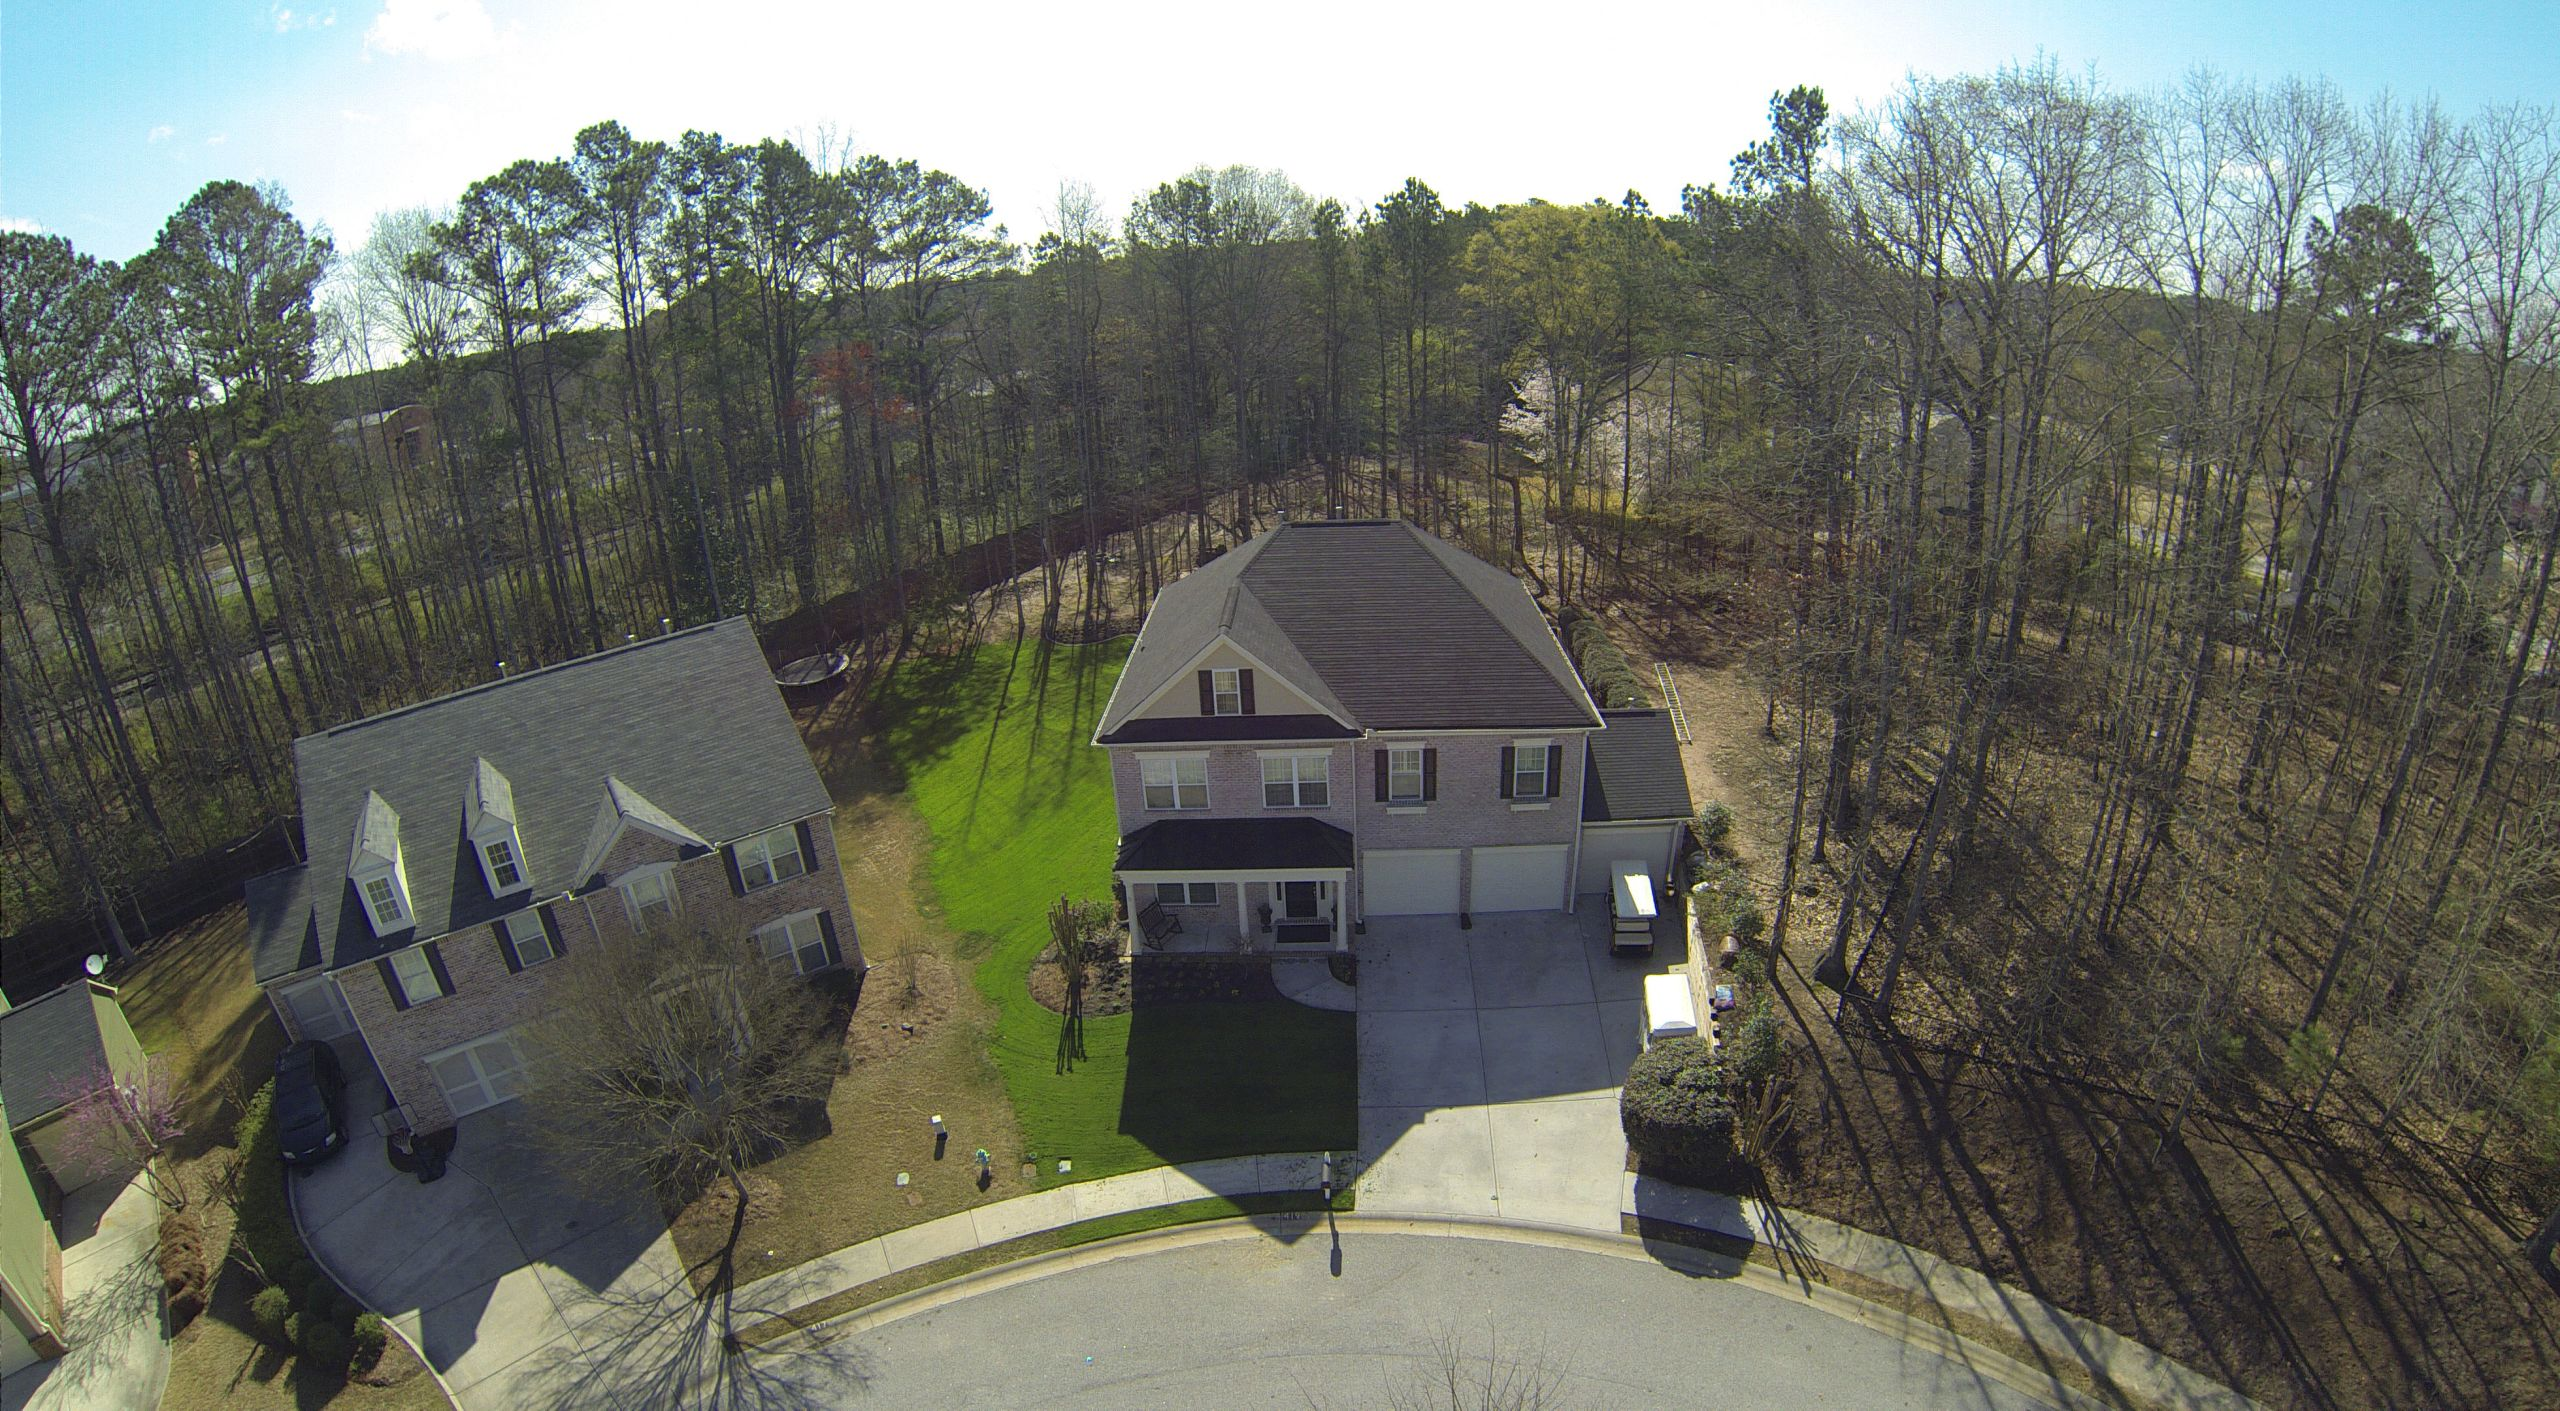 Offering Drone Photography